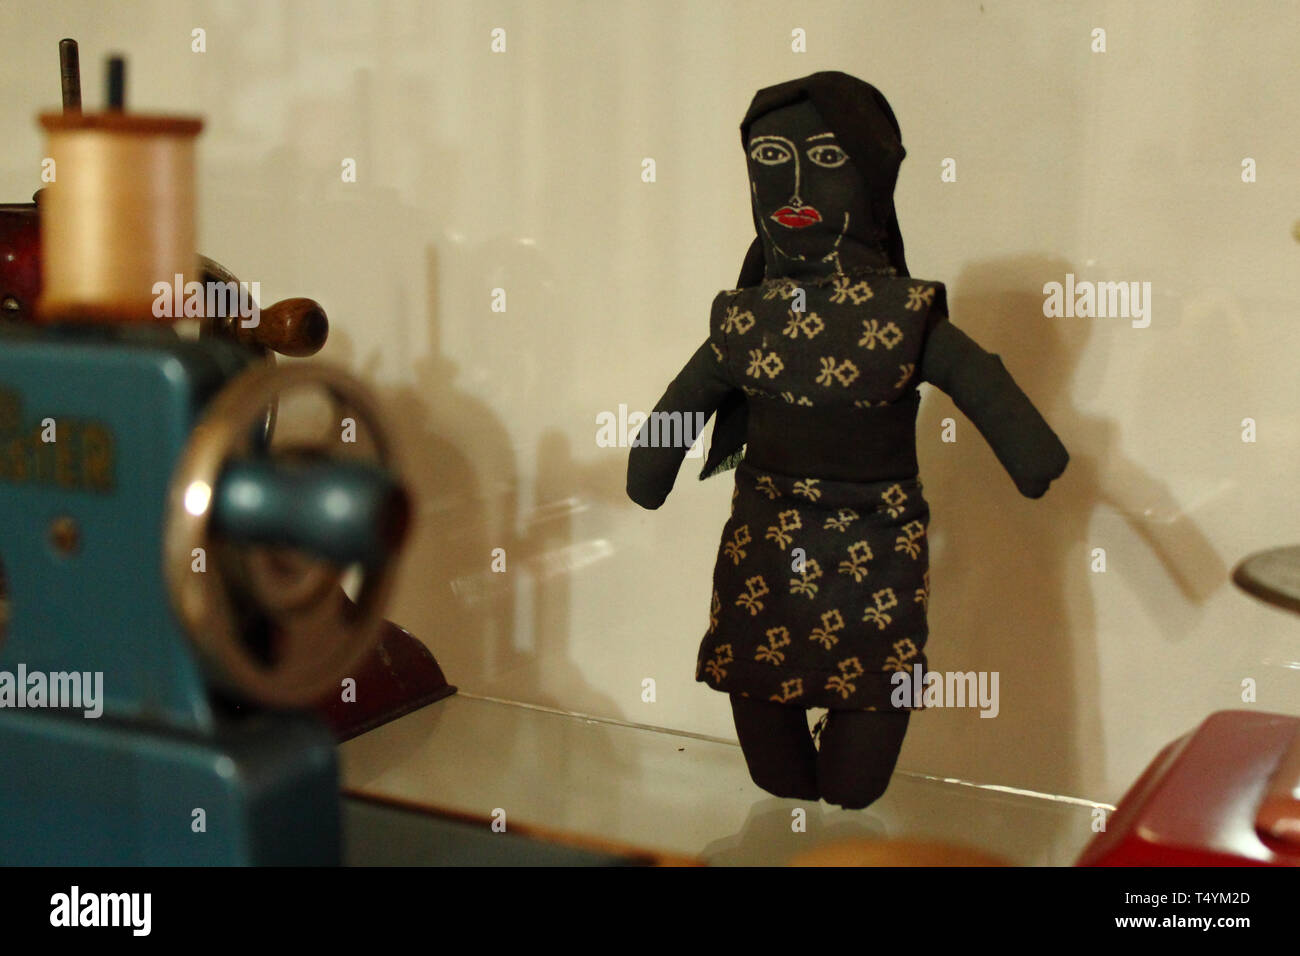 Stitched fabric doll at a local factory museum in Merida, Venezuela. - Stock Image